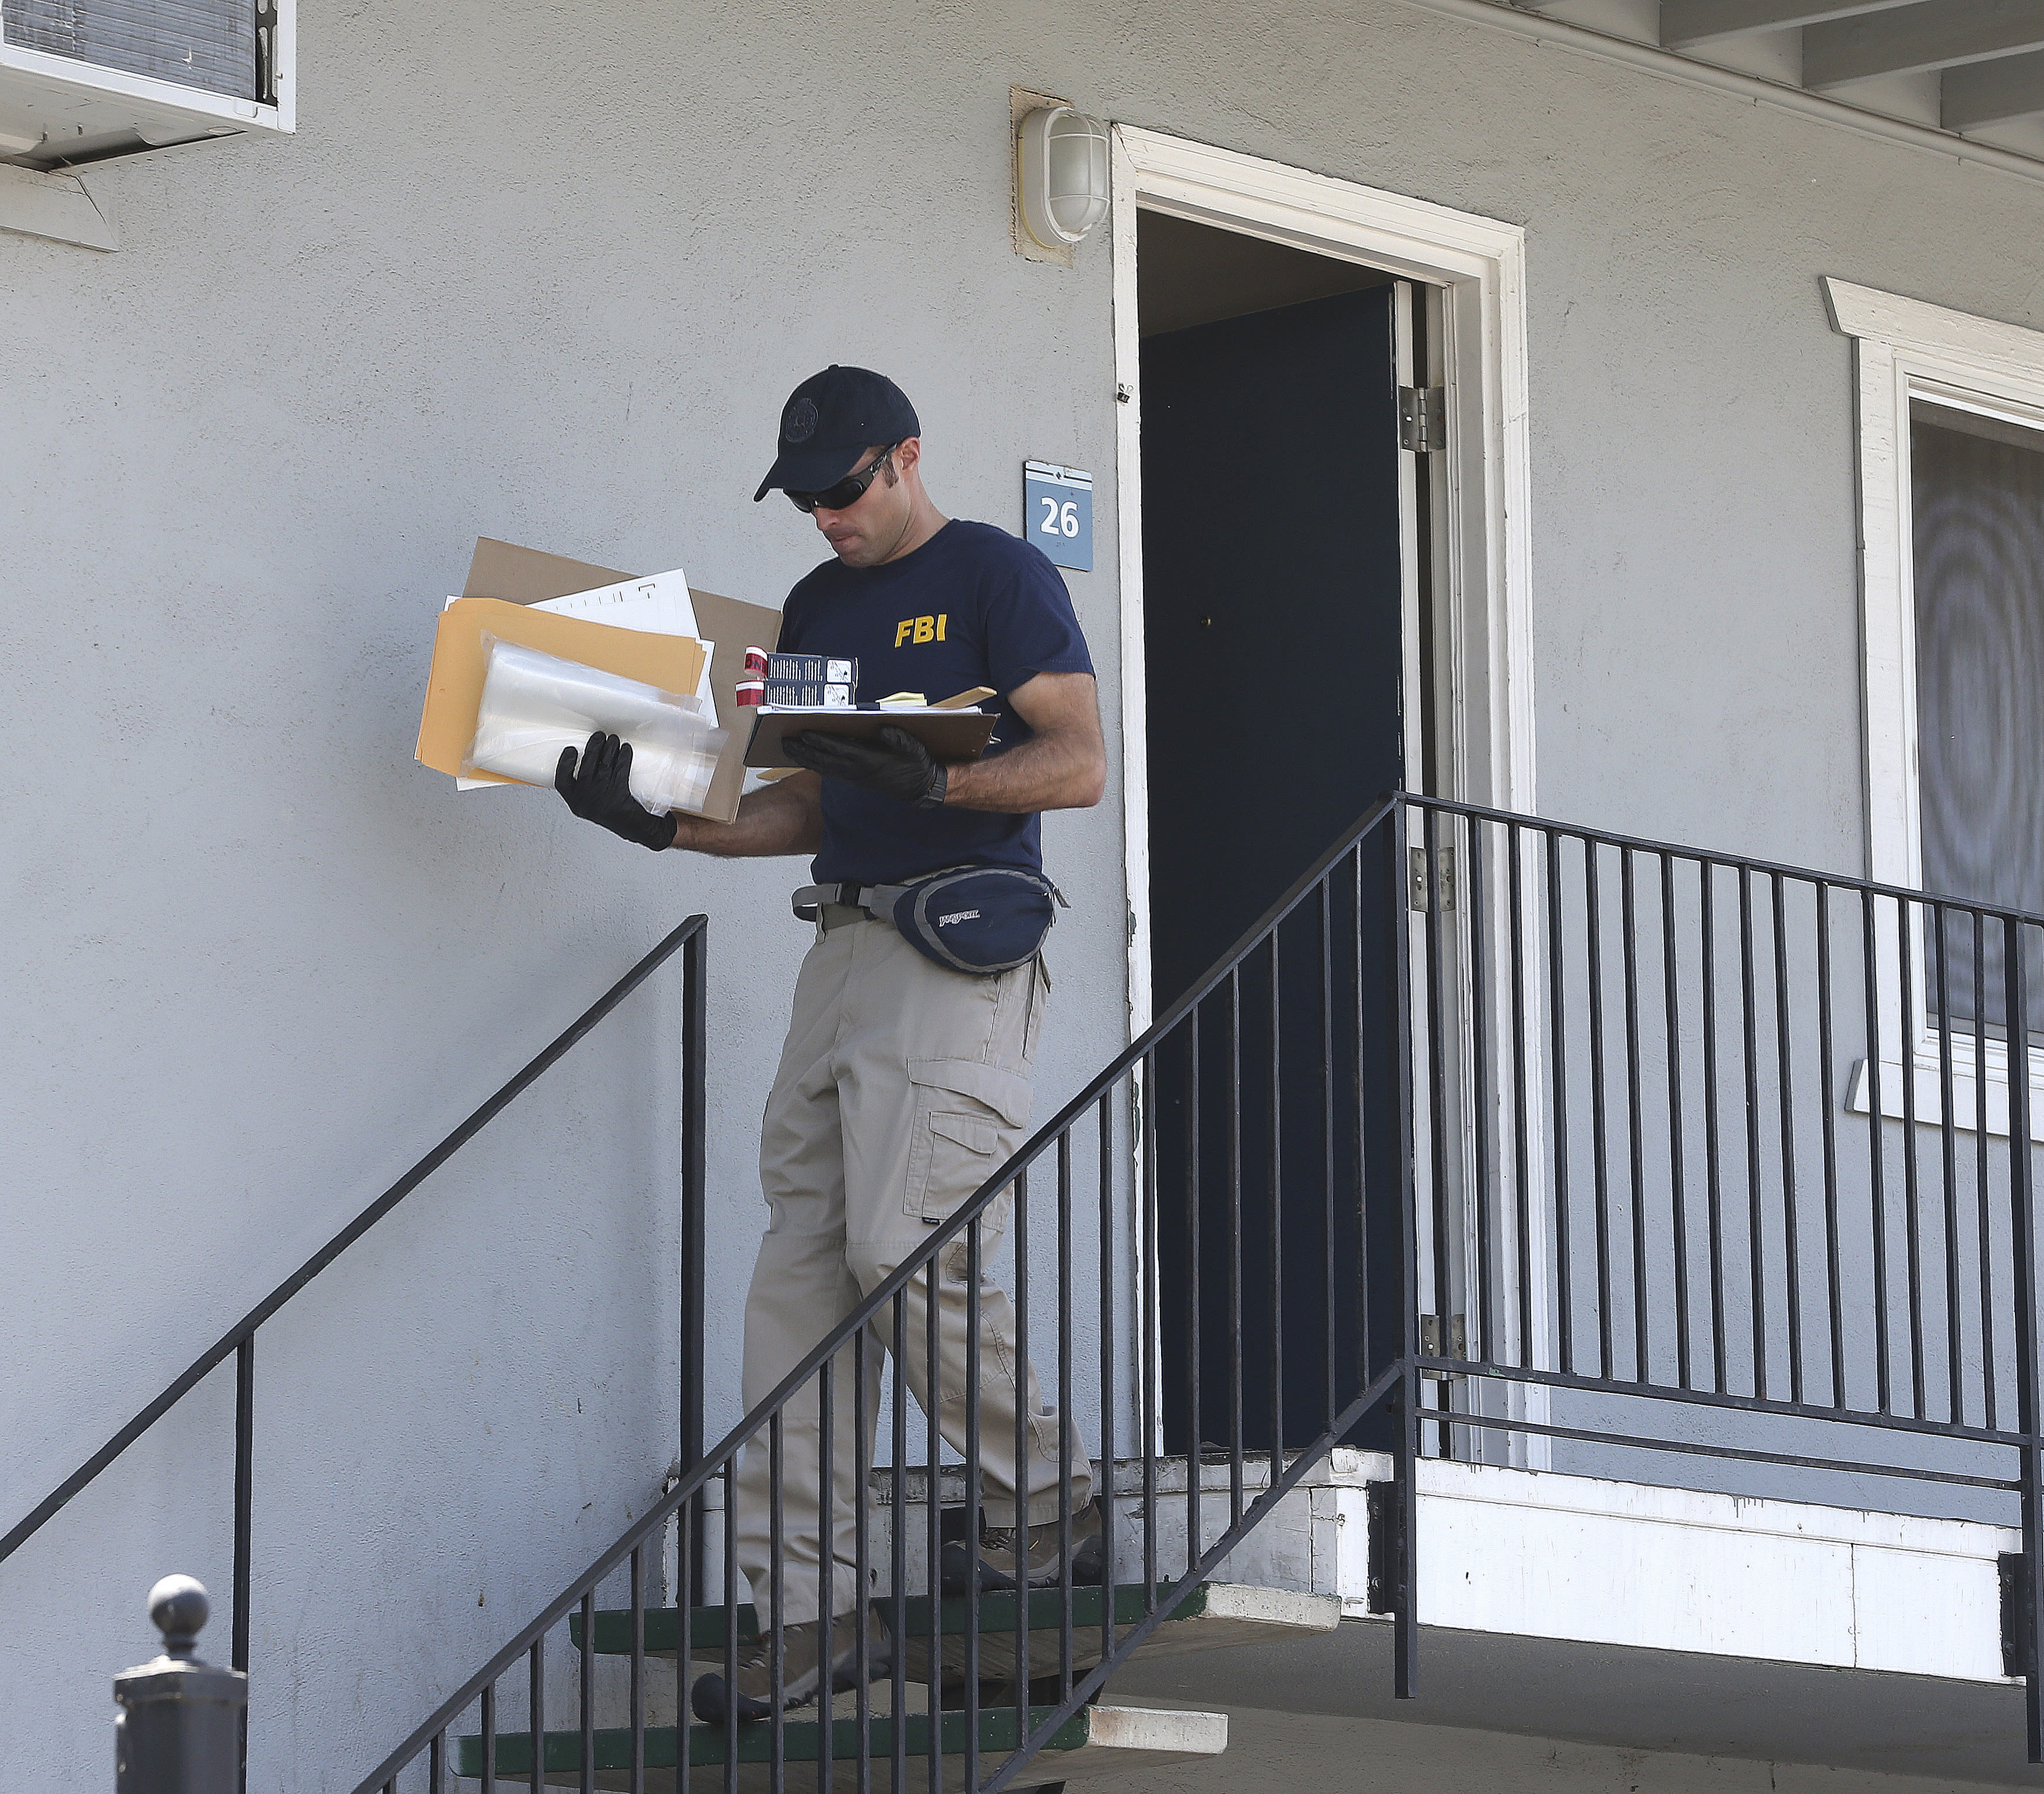 A federal agent removes items from an apartment following the arrest of a 45-year-old Iraqi refugee, Omar Ameen, Wednesday, Aug. 15, 2018, in Sacramento, Calif. Ameen was arrested on a warrant alleging that he killed an Iraqi policeman in 2014 while serving with the Islamic State terror organization. (AP Photo/Rich Pedroncelli)